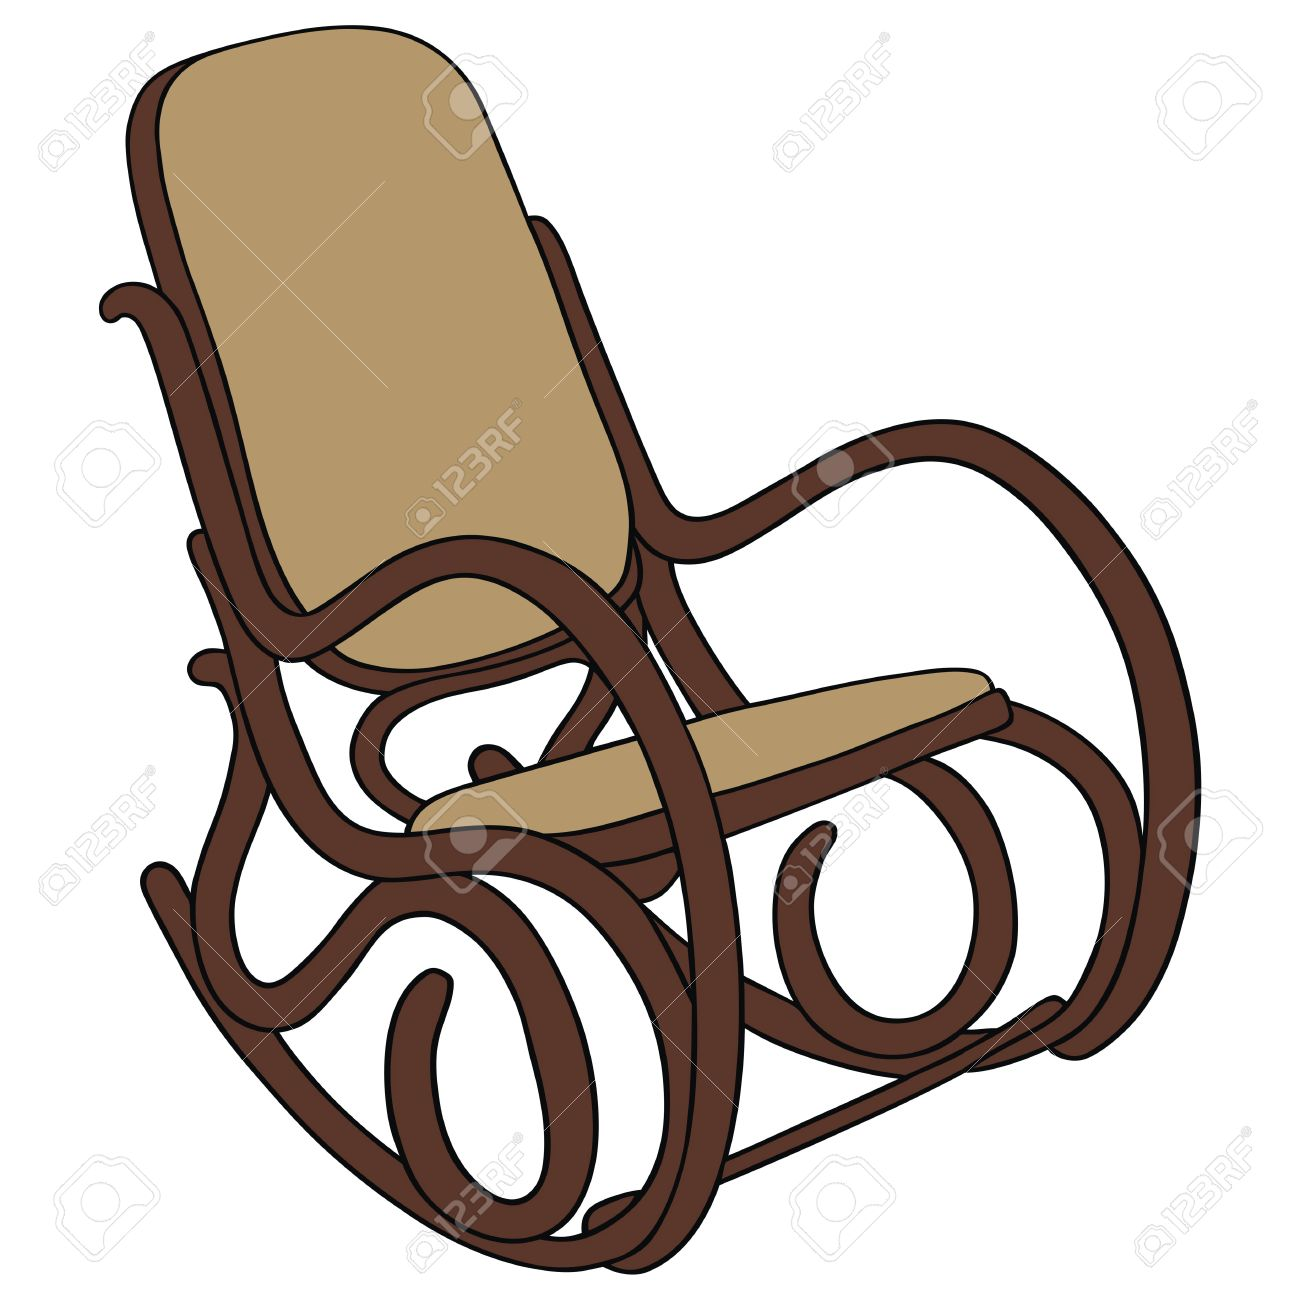 Hand Drawing Of Old Wooden Rocking Chair Royalty Free Cliparts